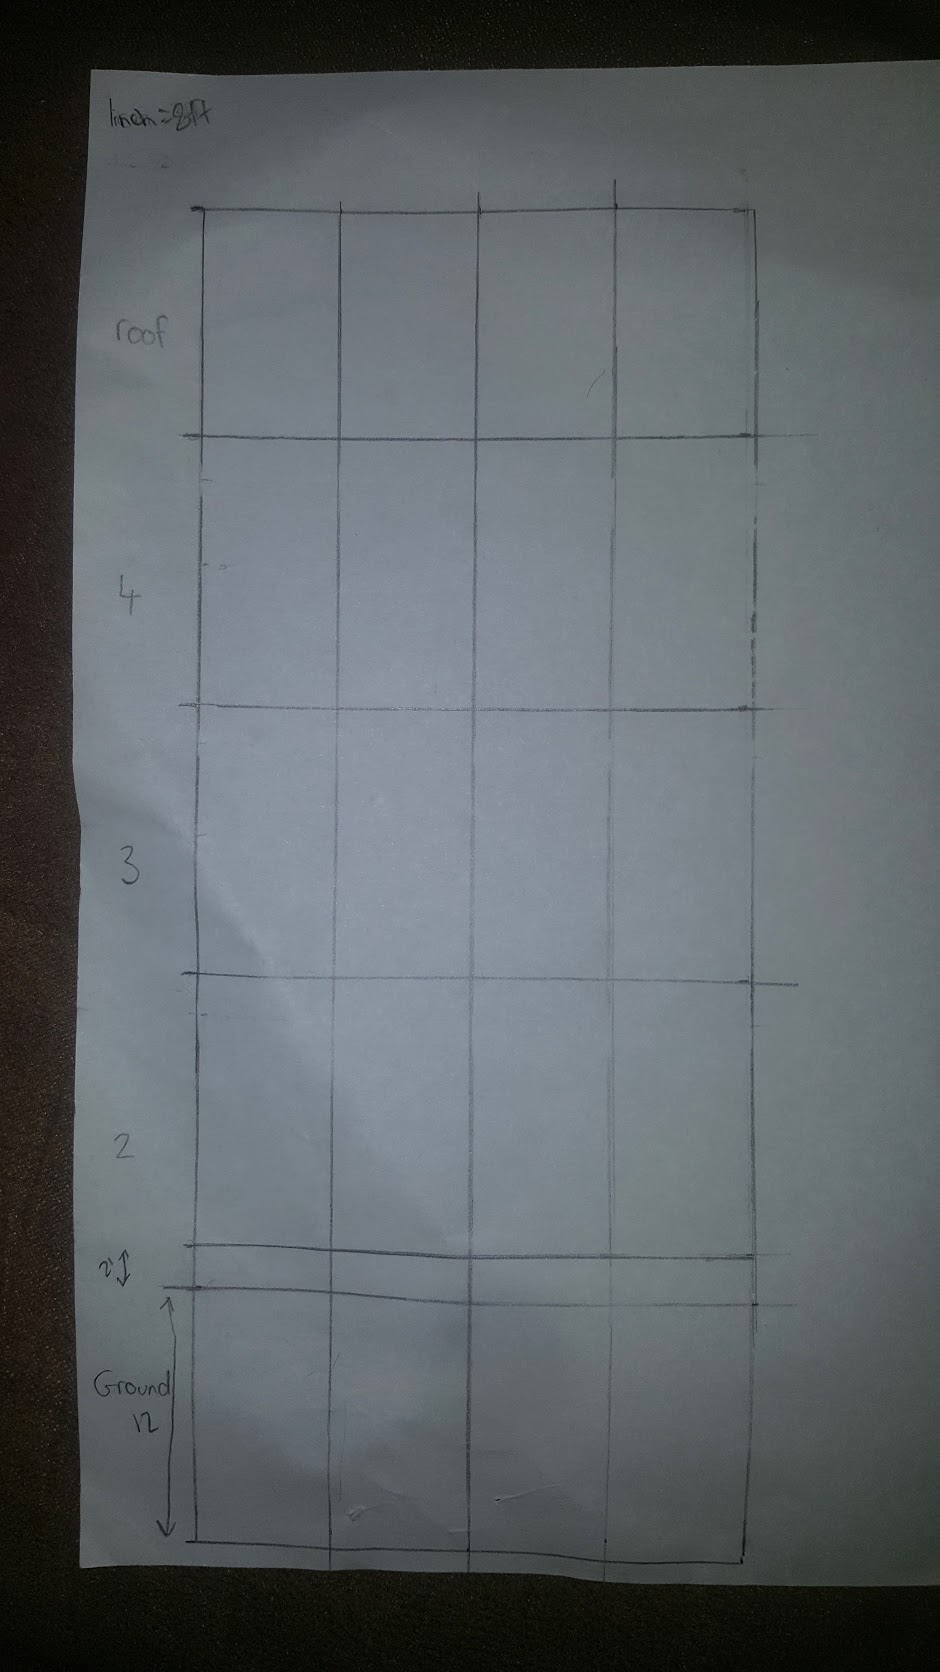 The 25x60 foot front side of my building with guidelines dividing the floors and placement of the doors and windows.